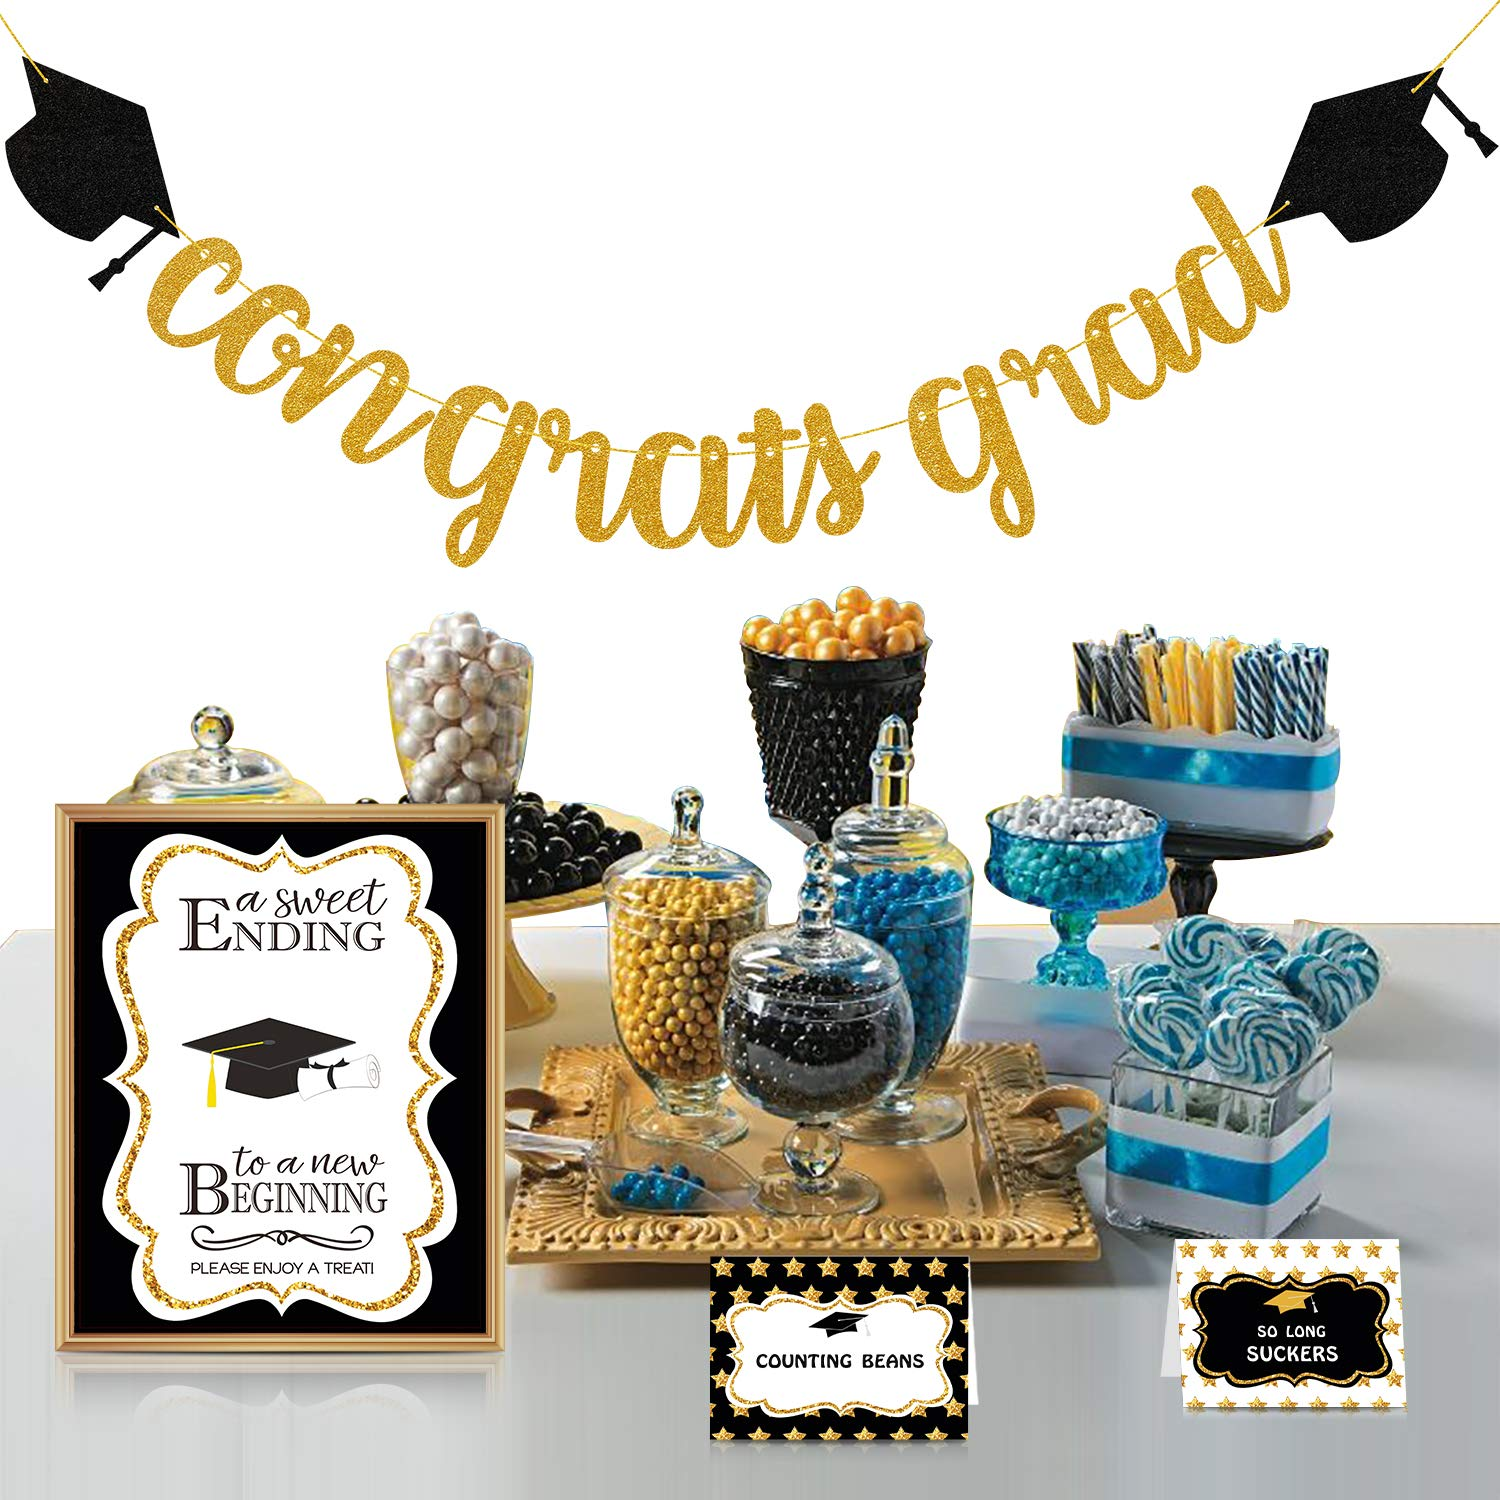 2019 Graduation Party Decorations - Candy Bar Buffet Glitter Banner Sign Label Tent Cards Set - Grad Supplies Decor for Highschool Prek - Black and Gold